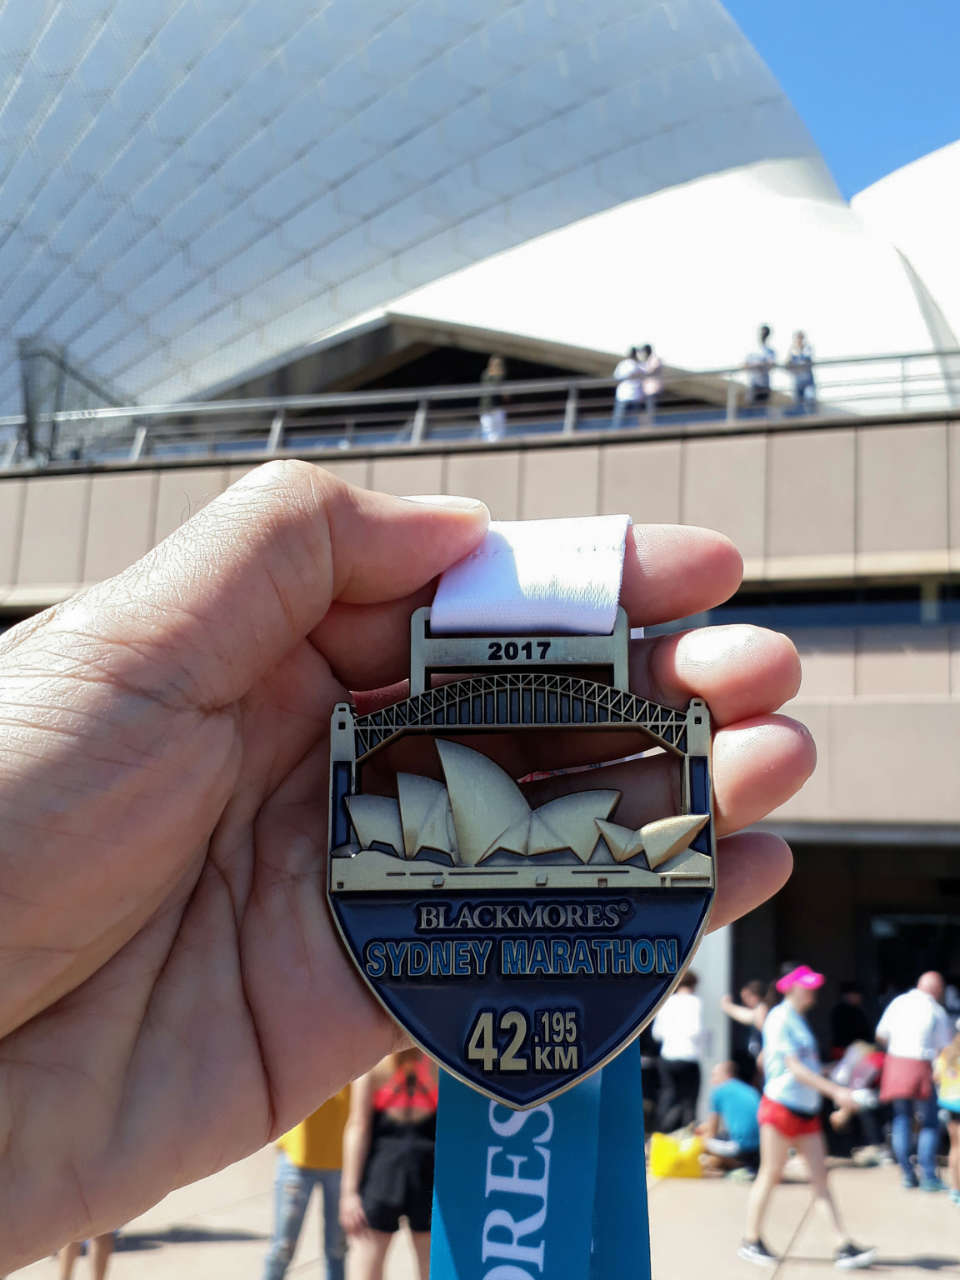 Blackmores Sydney Marathon: Sweet 17 Edition on 17 September 2017